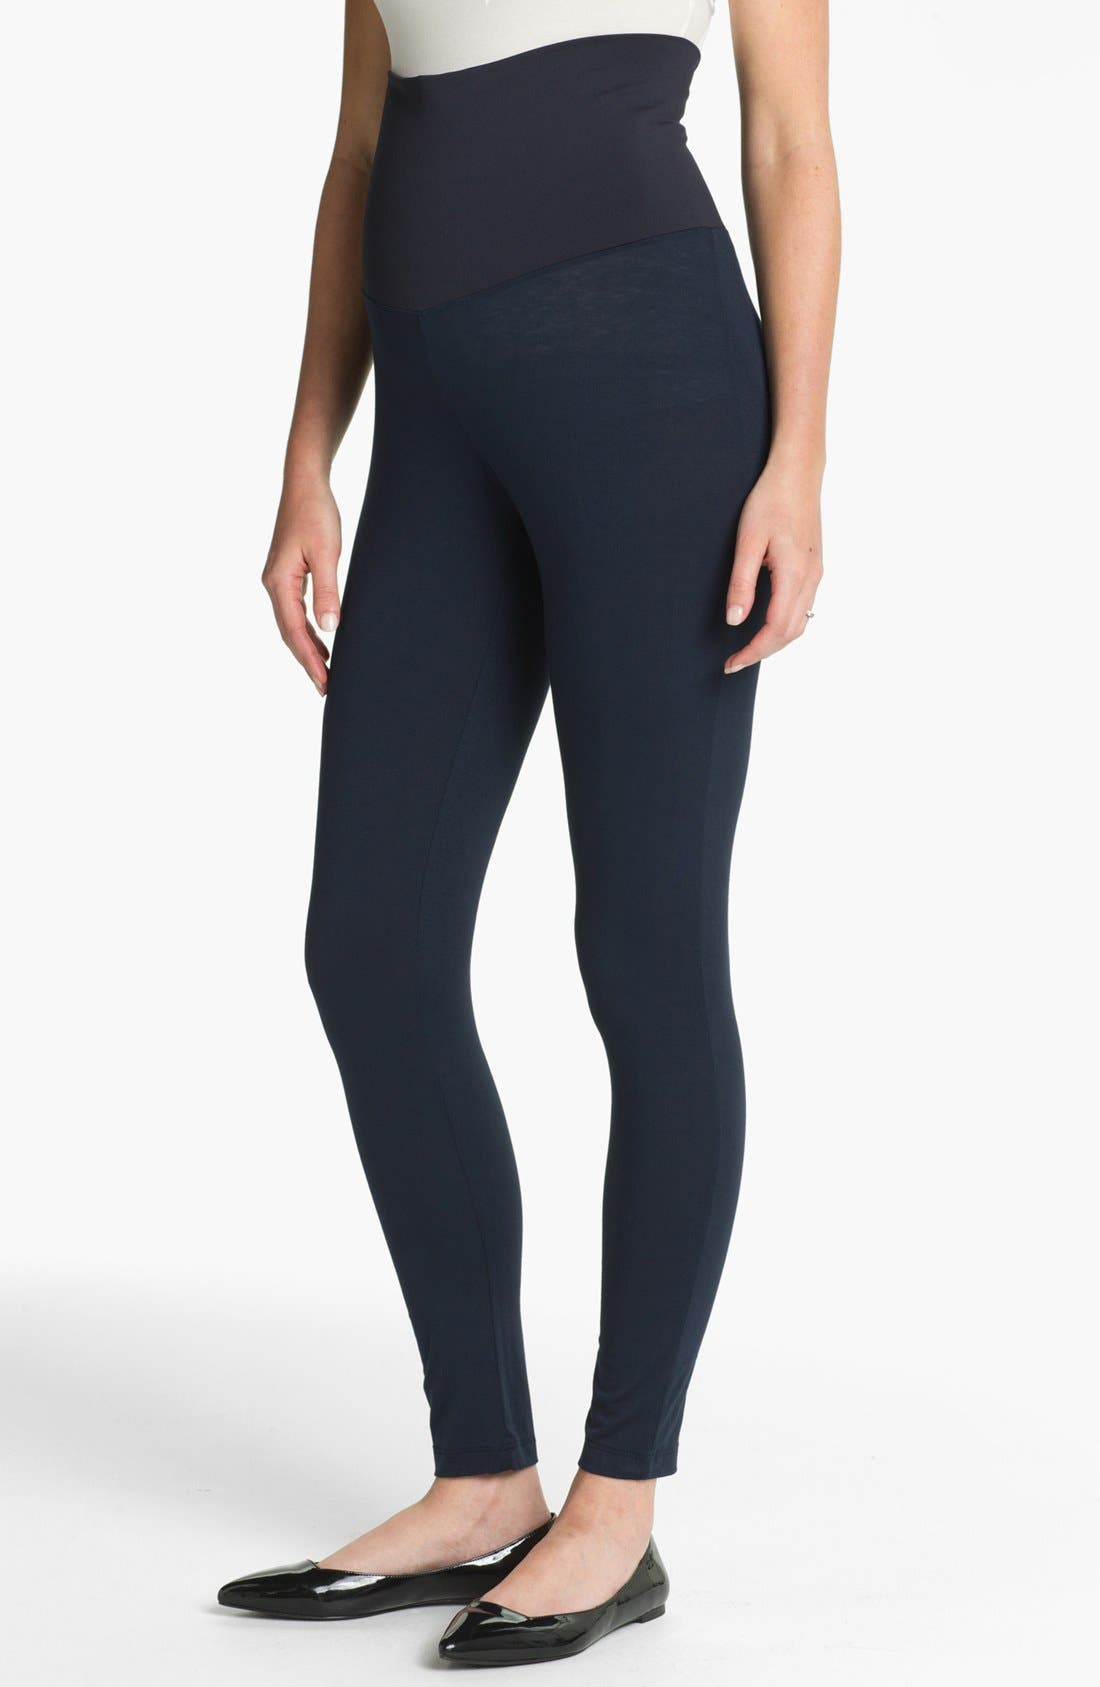 Post Maternity Support Leggings,                             Main thumbnail 1, color,                             Navy